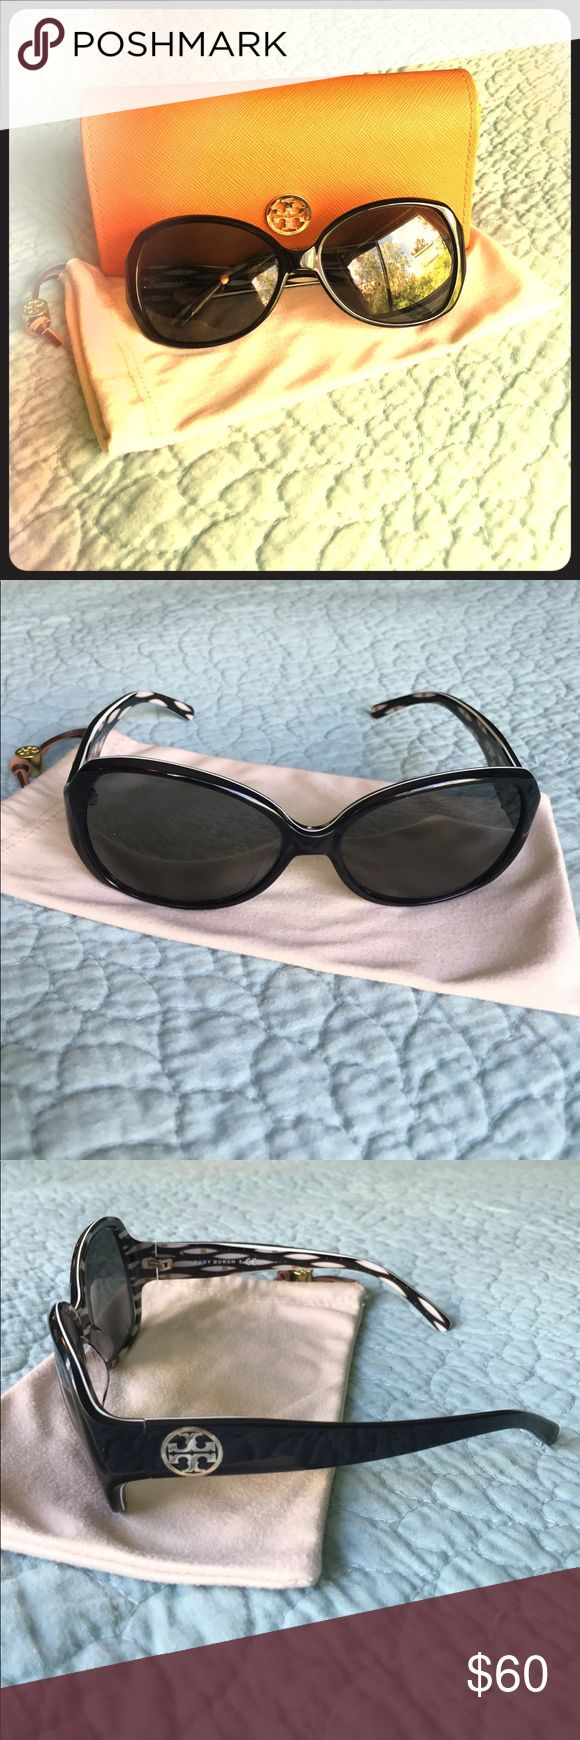 Tory Burch Sunglasses 🕶 Chic black Tory Burch sunglasses with cream microfiber pouch and orange case. Tory Burch emblem on temple of sunglasses, front of case, and leather string of pouch. Black, cream, and beige design on inside of sunglasses with middle white piping all around. Needs non-prescription lenses. Tory Burch Accessories Sunglasses